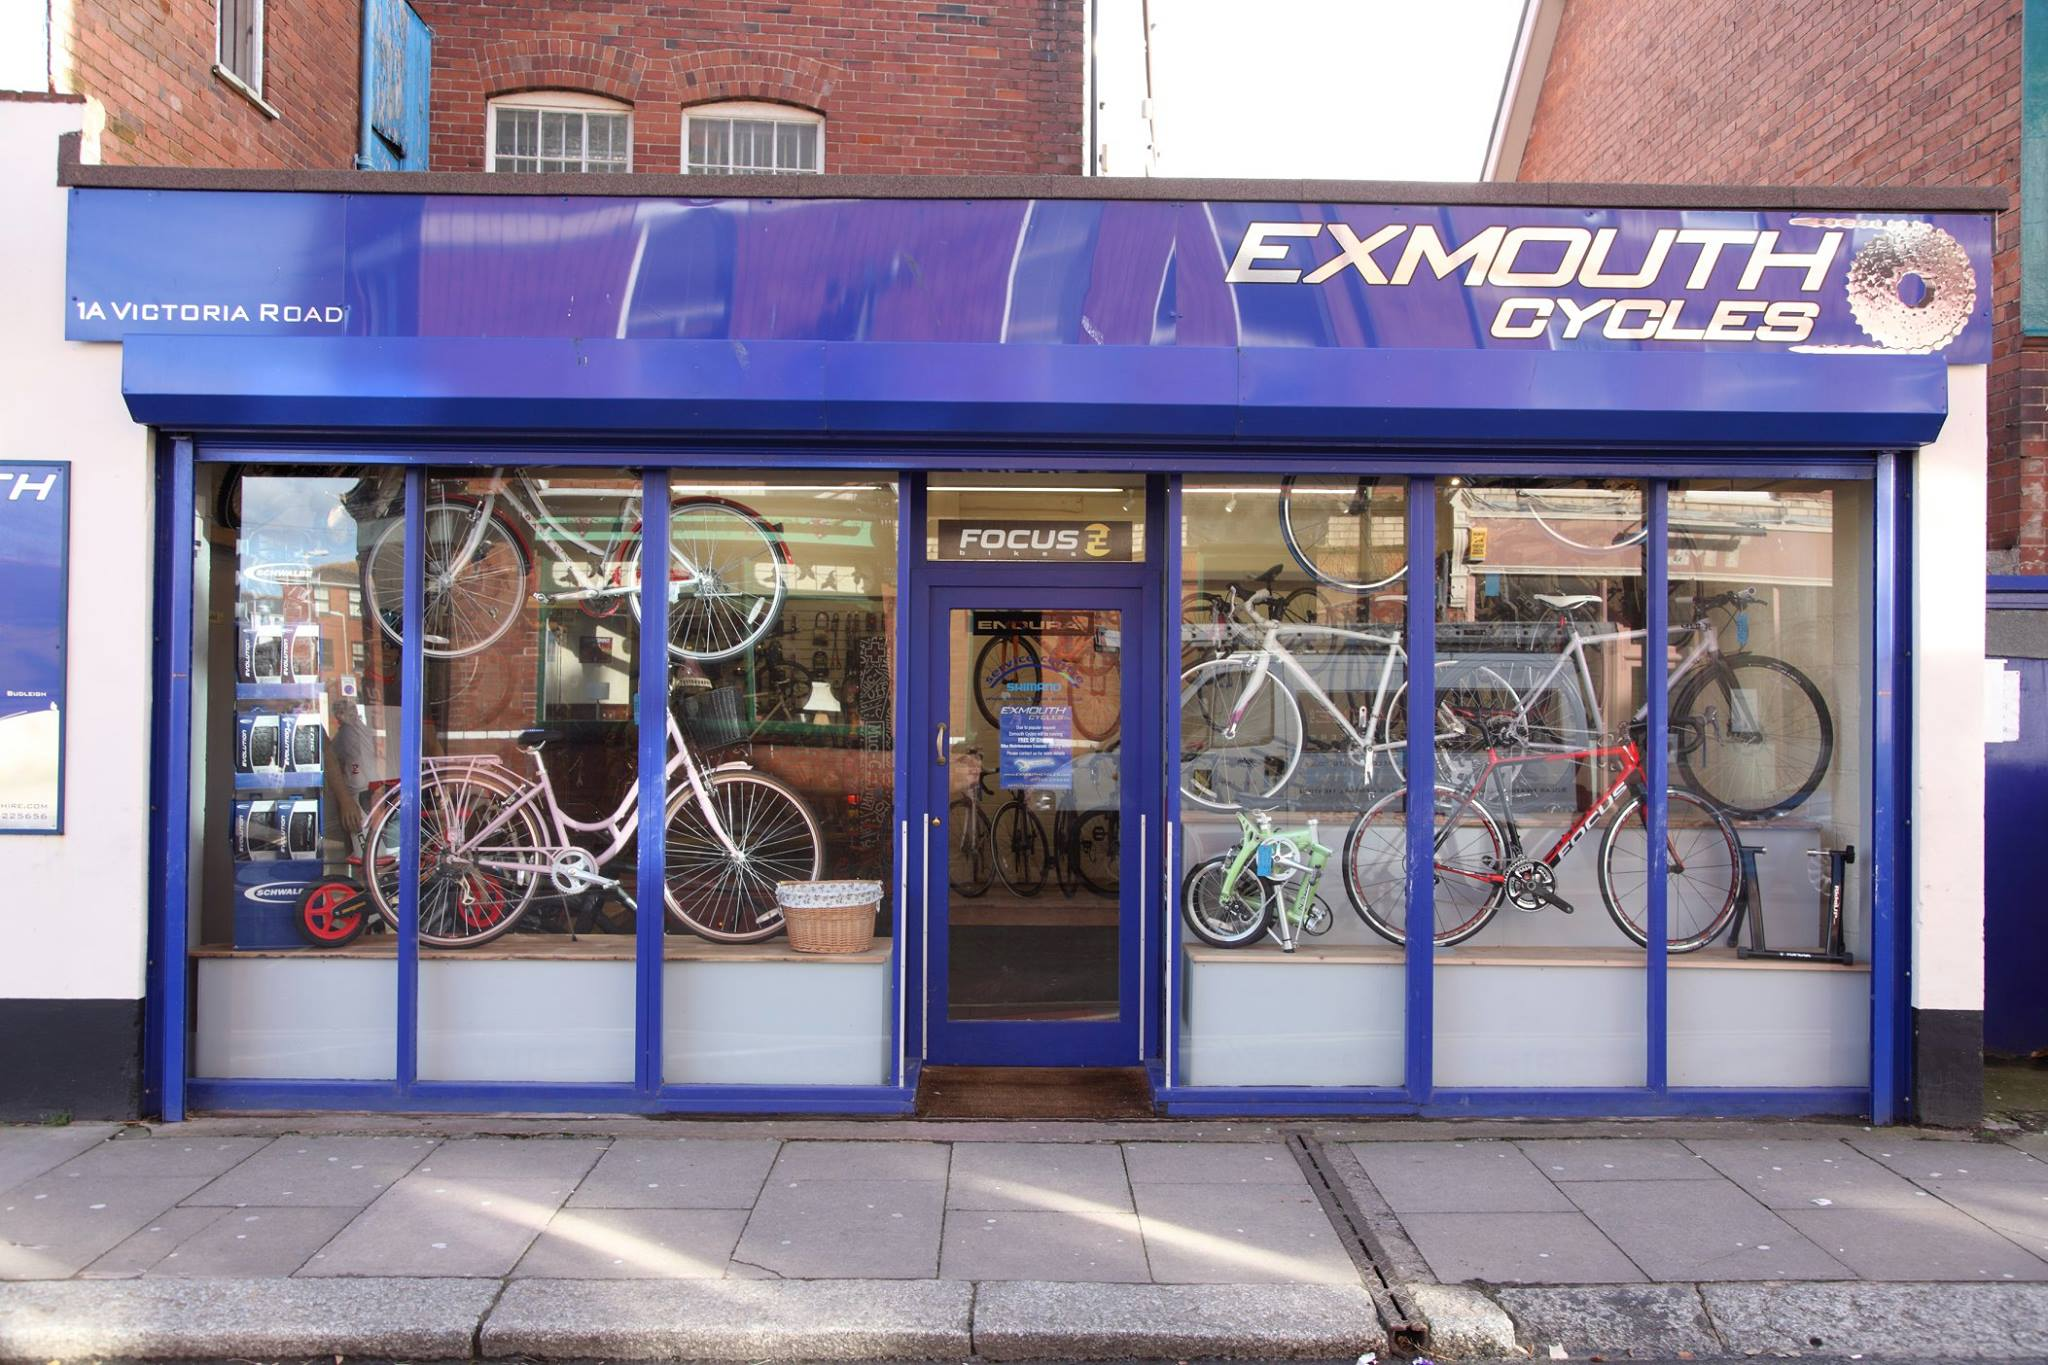 Exmouth Cycles shop front